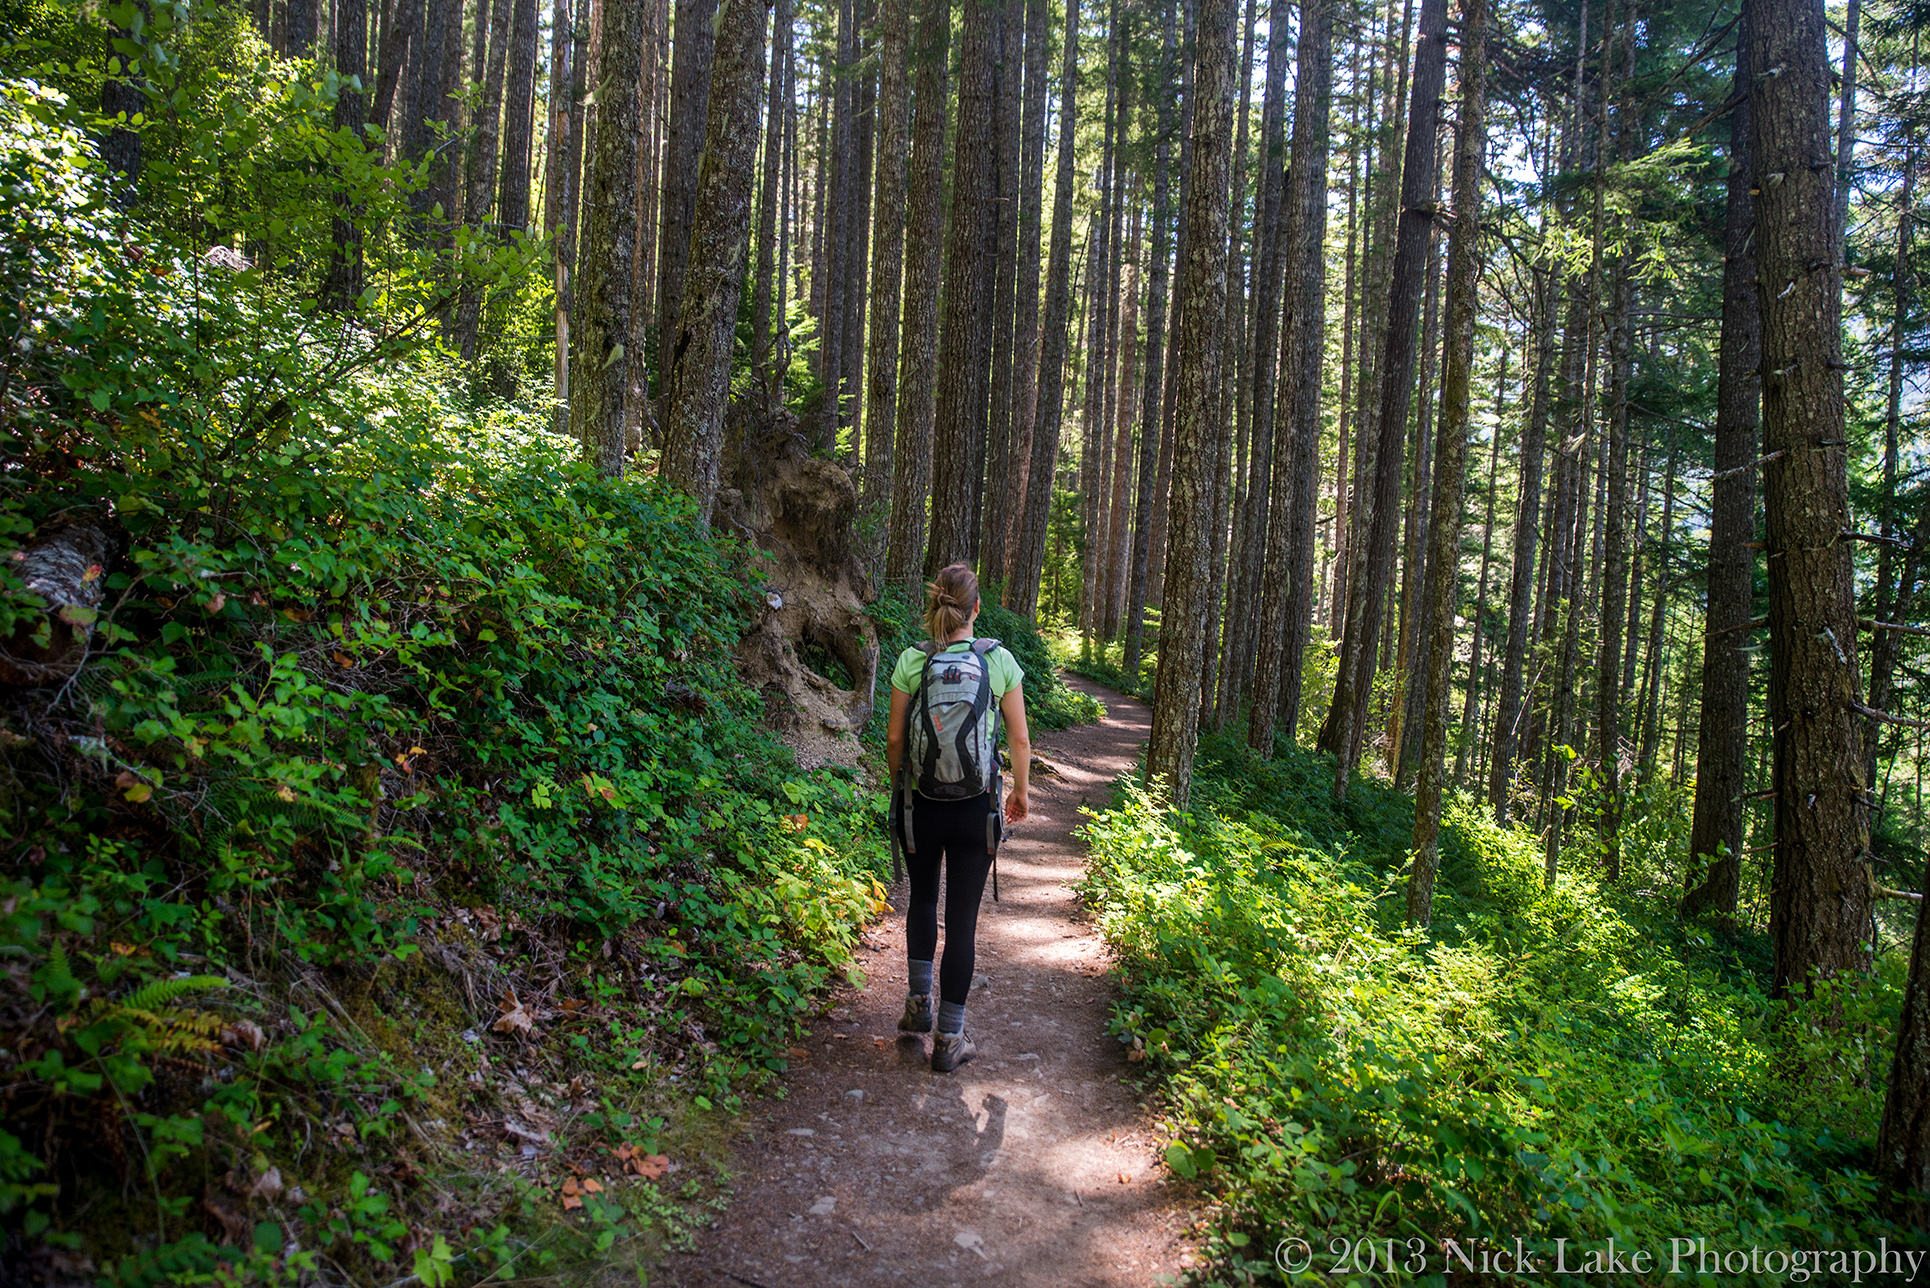 Woman Hiking Forest near Elwha River, Olympic National Park, Washington